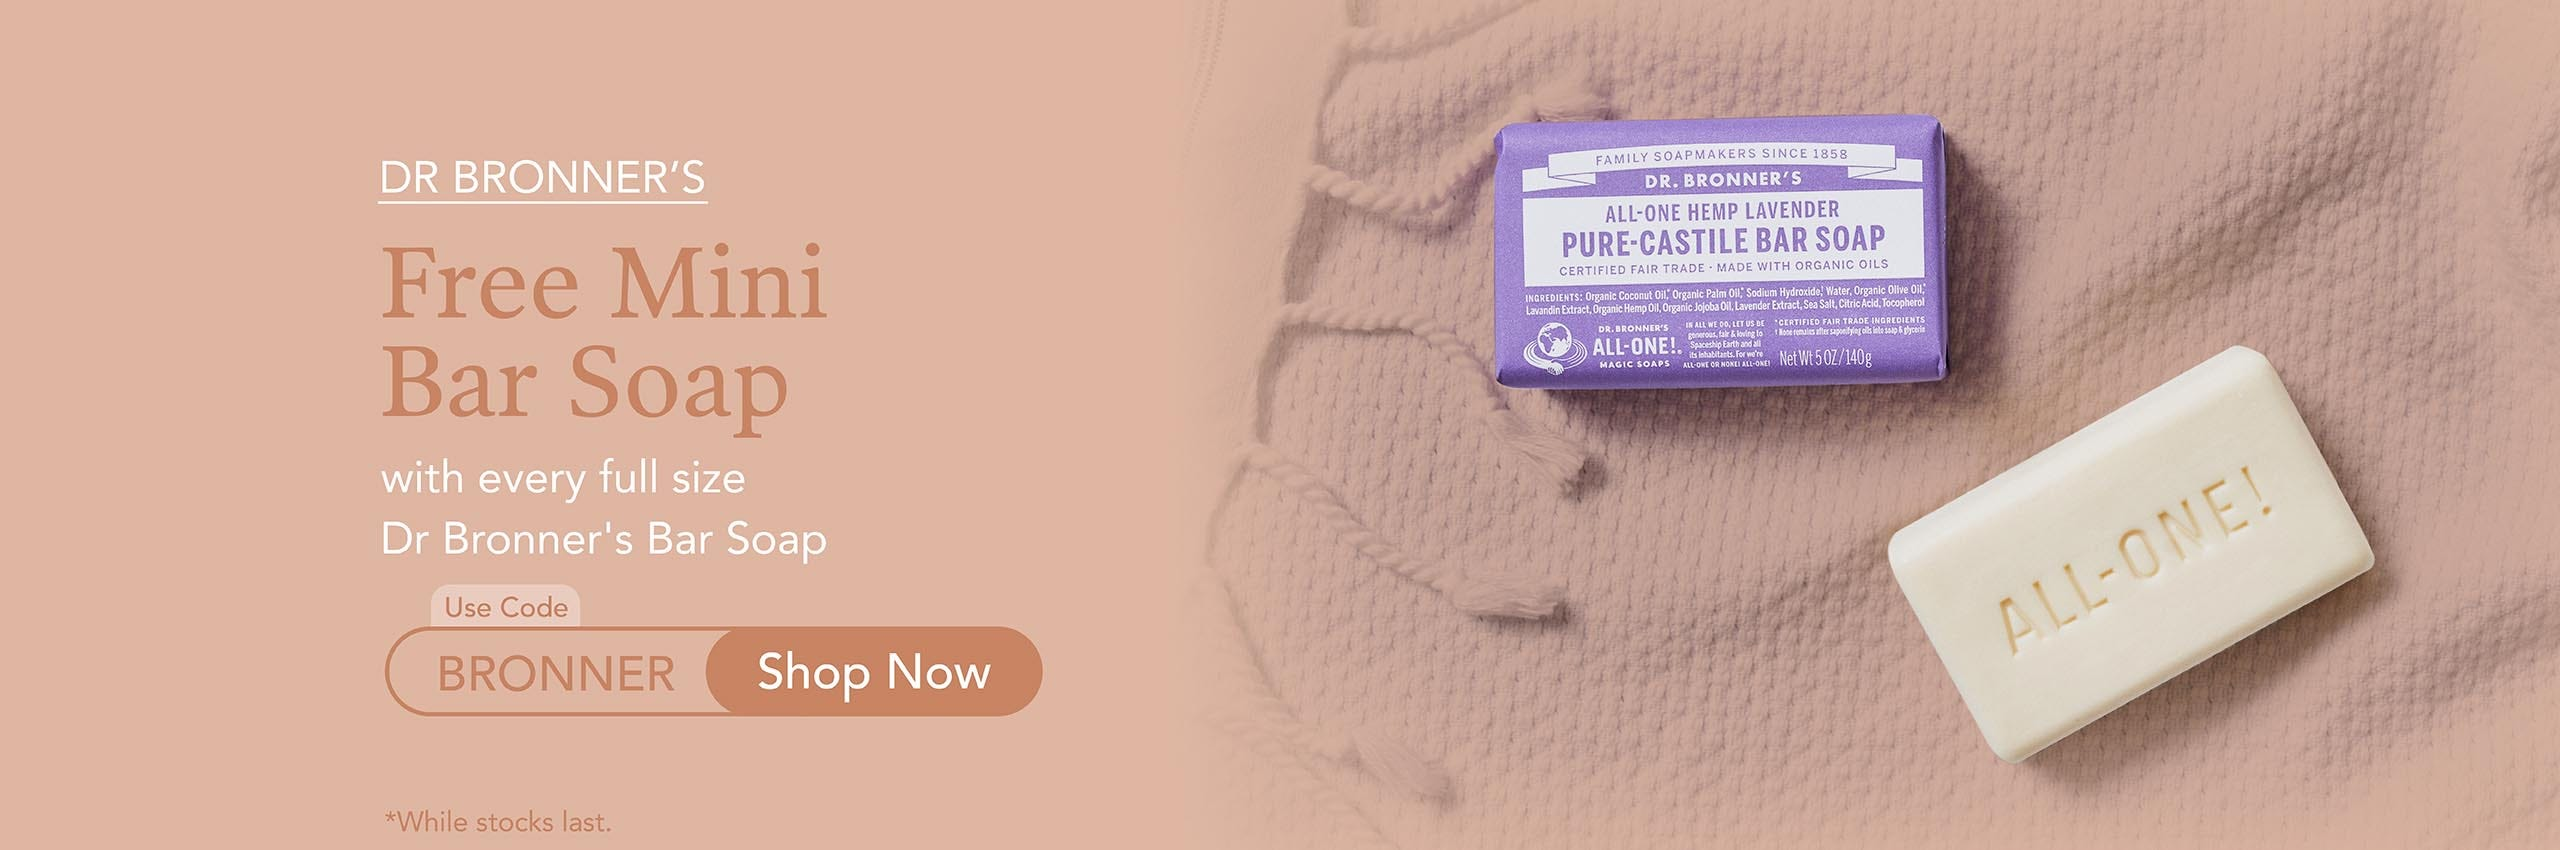 Free Gift from Dr Bronner's